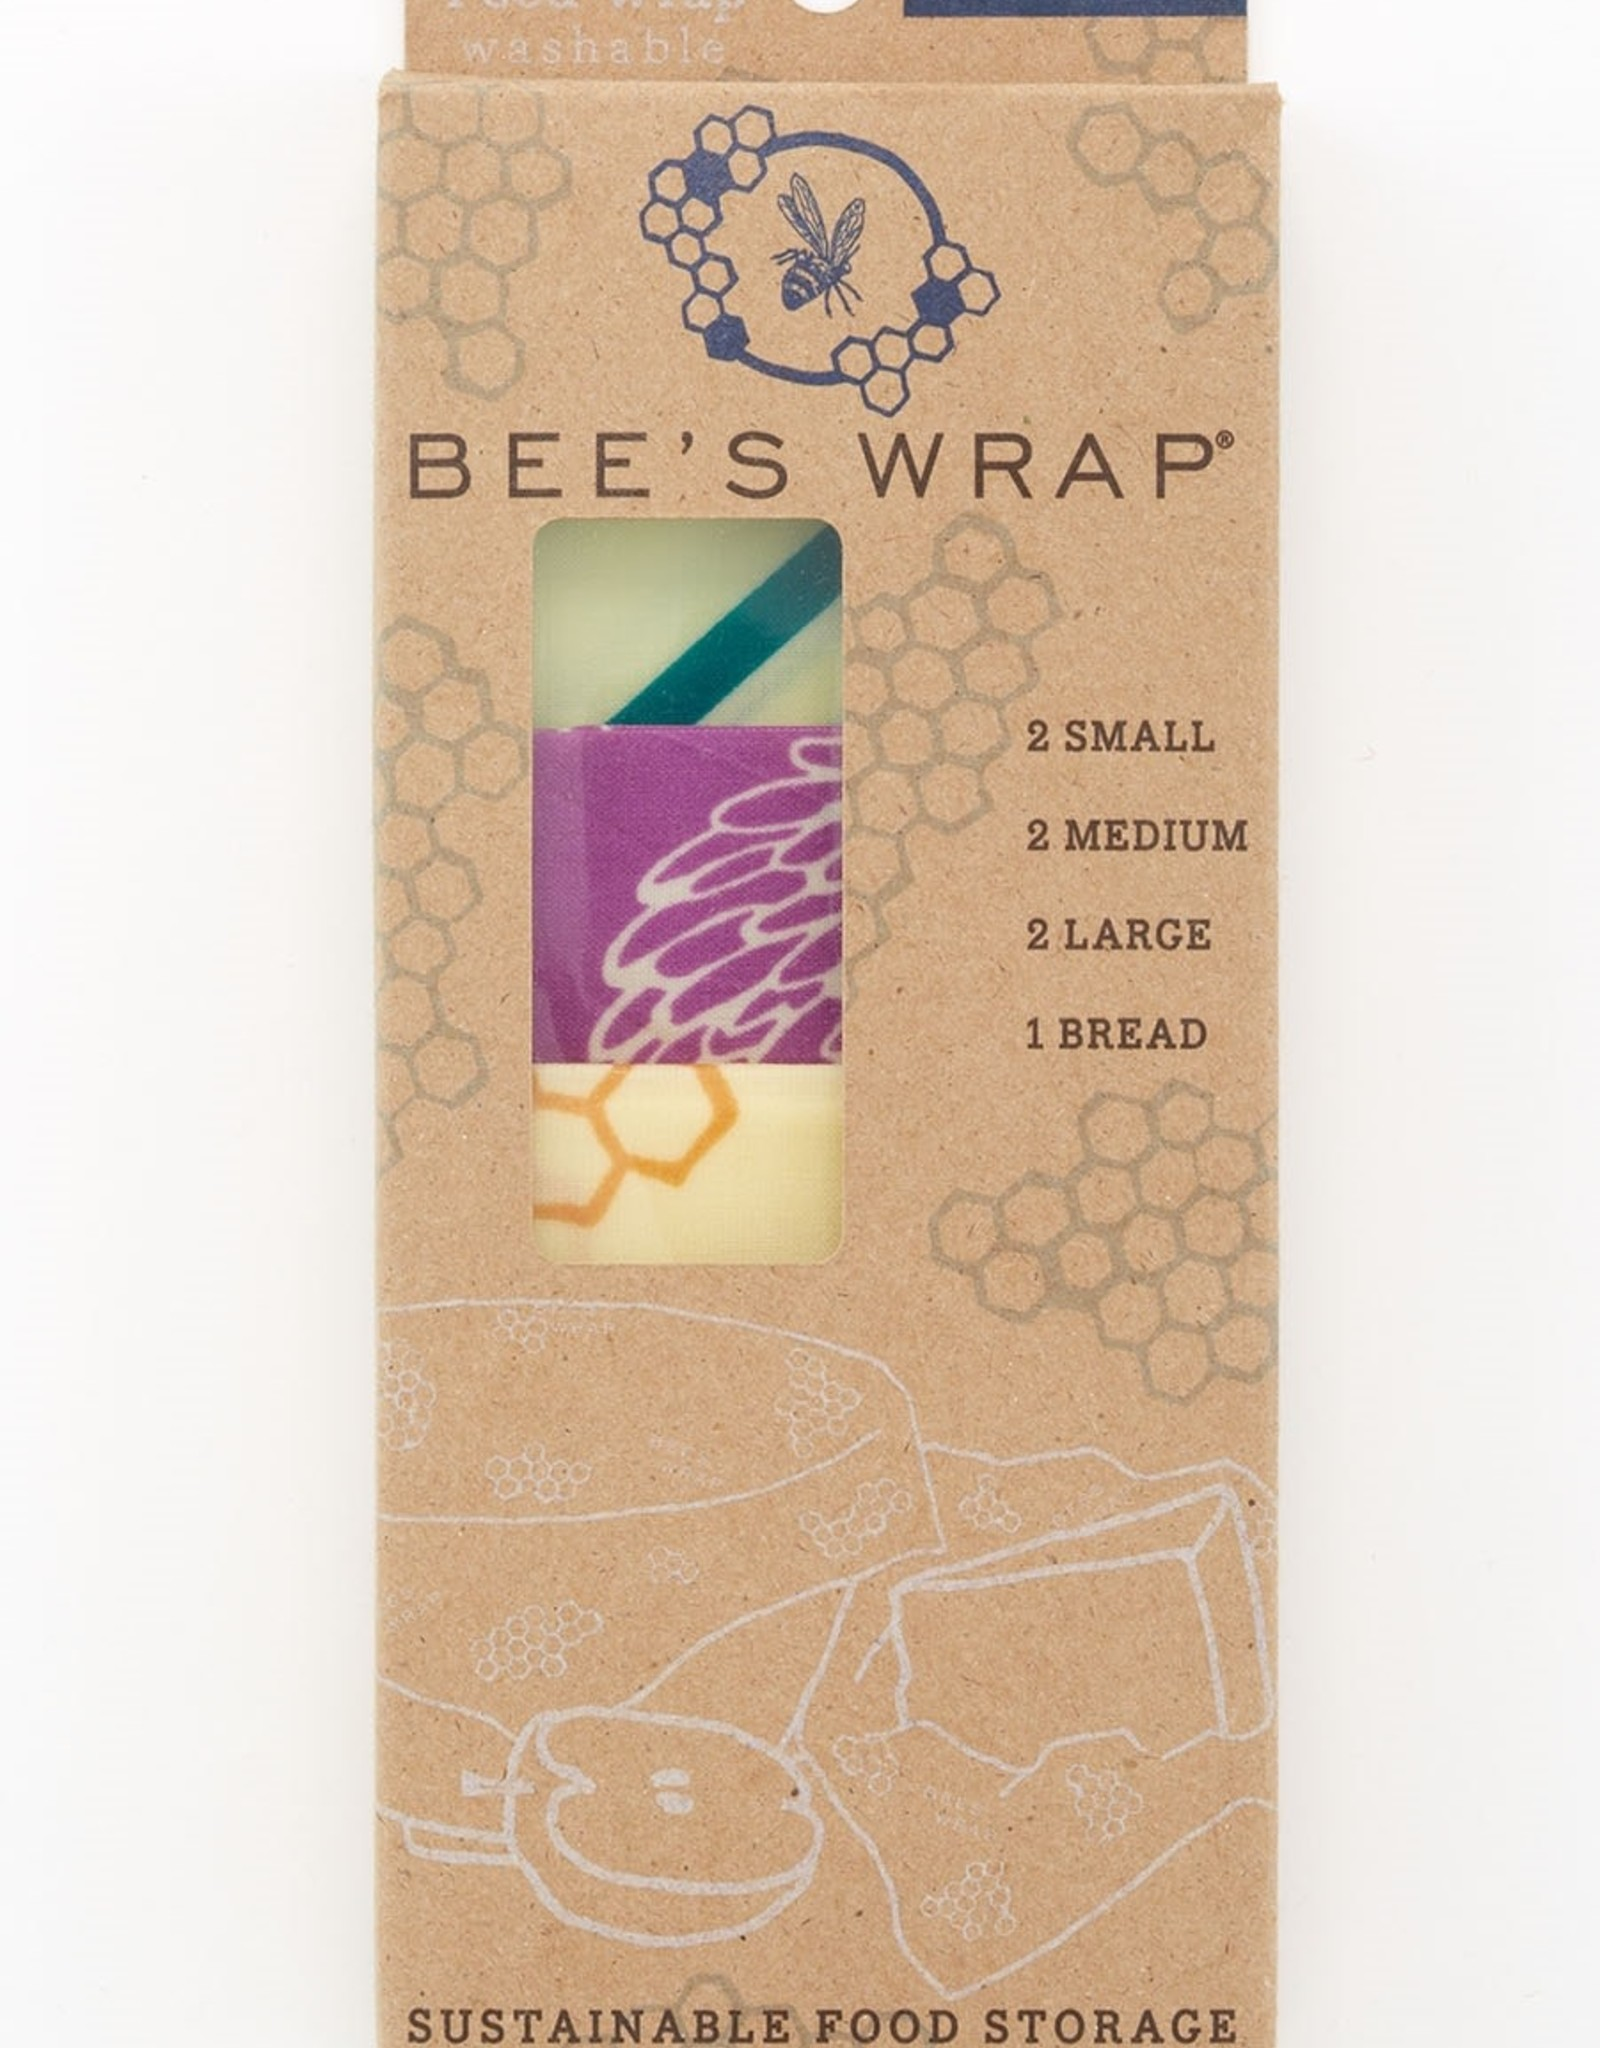 Bee's Wrap Bee's Wrap - Variety Pack 2xS/2xM/2xL/1xBread